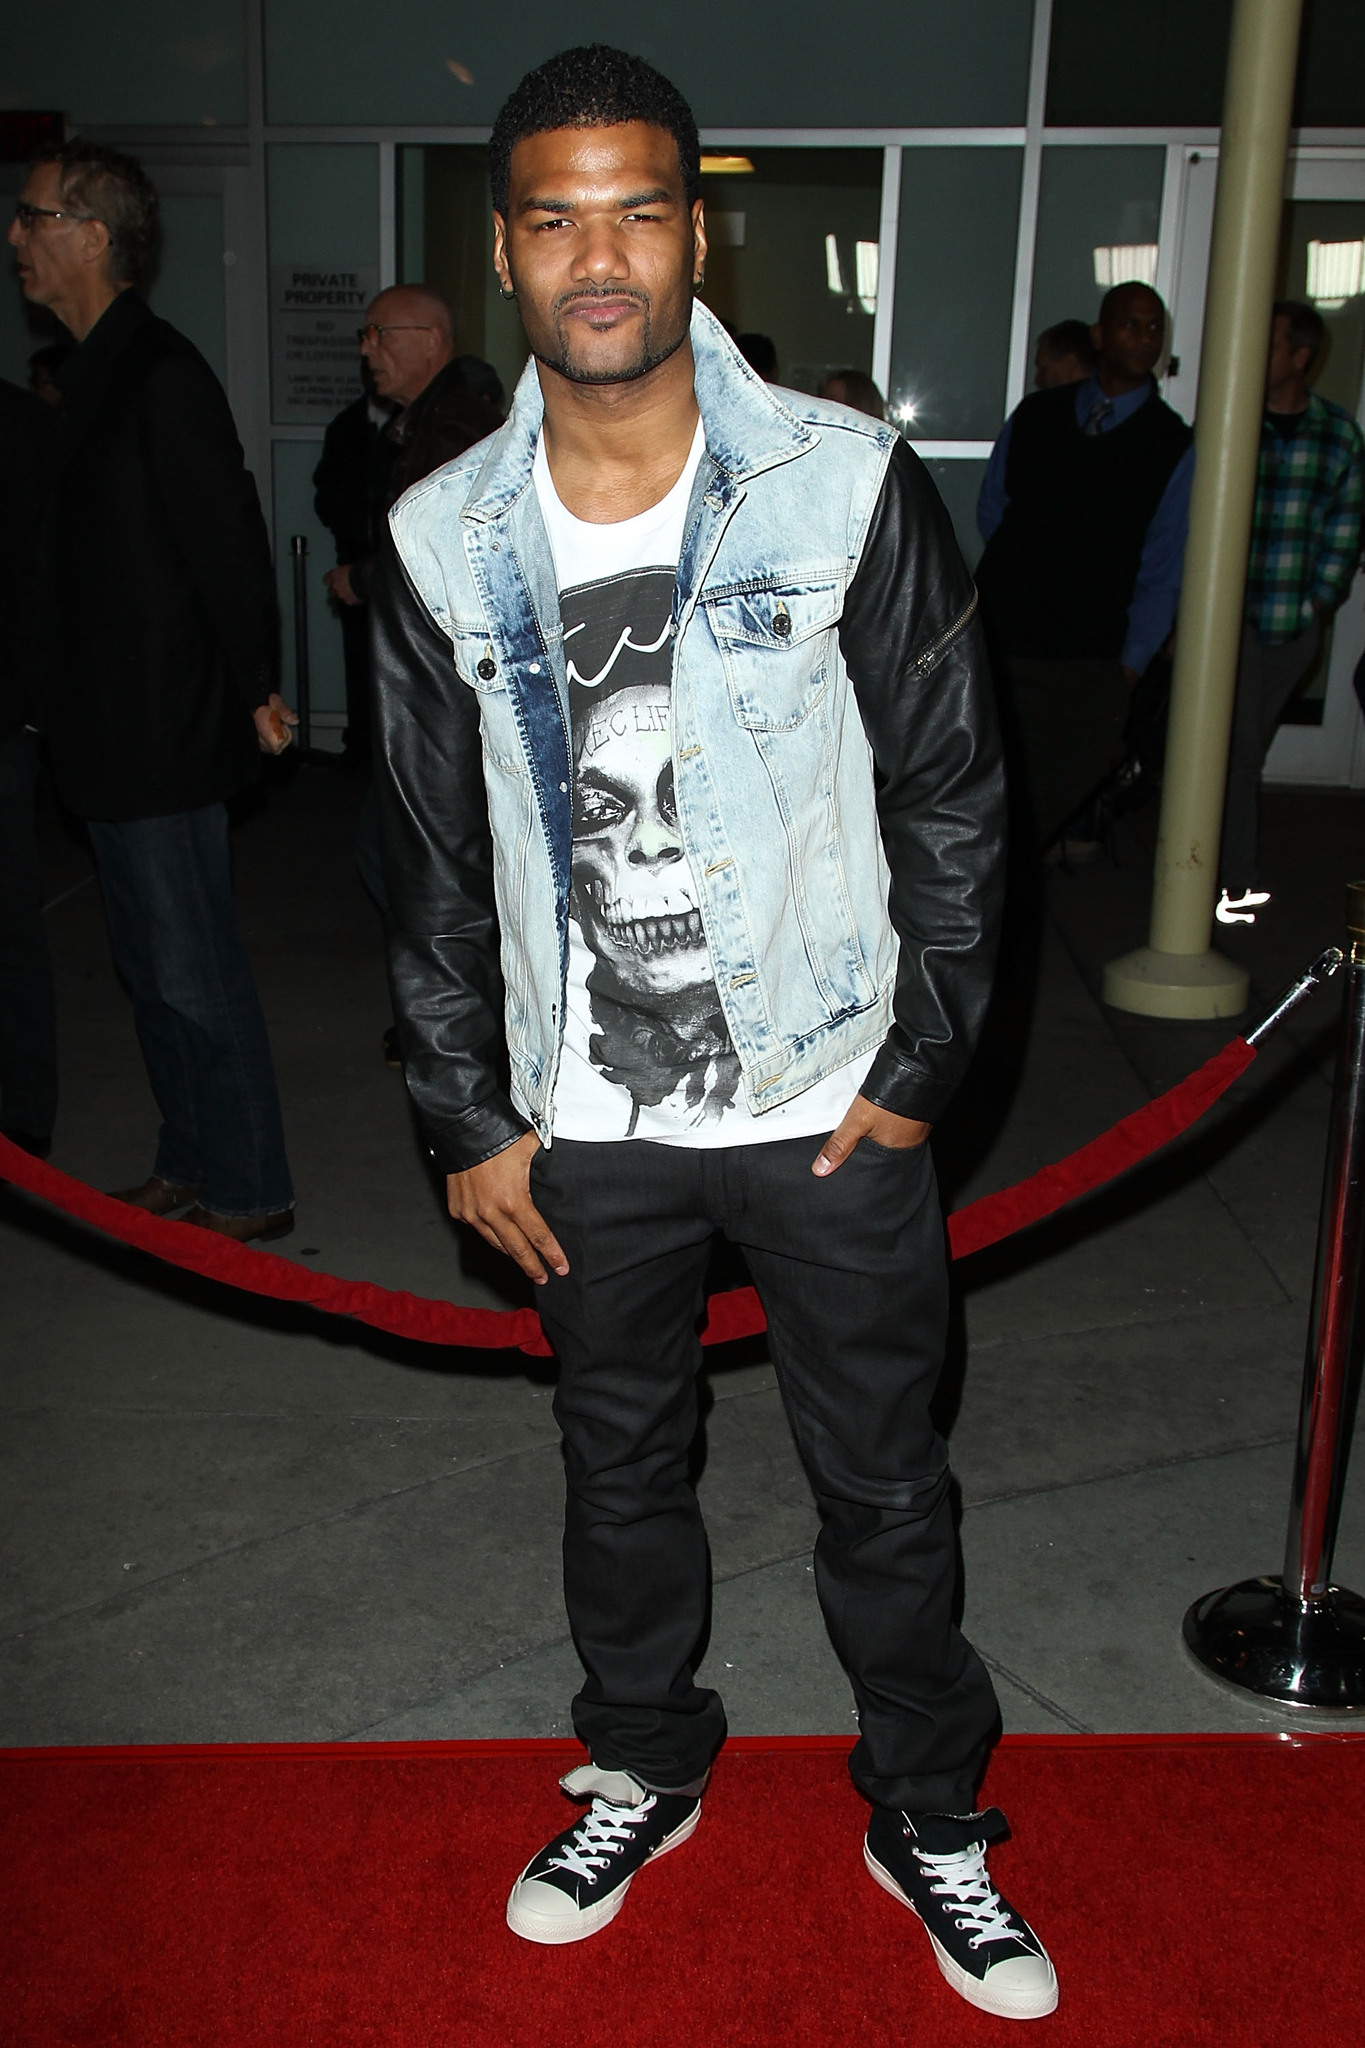 Damien Dante Wayans at an event for A Haunted House (2013)